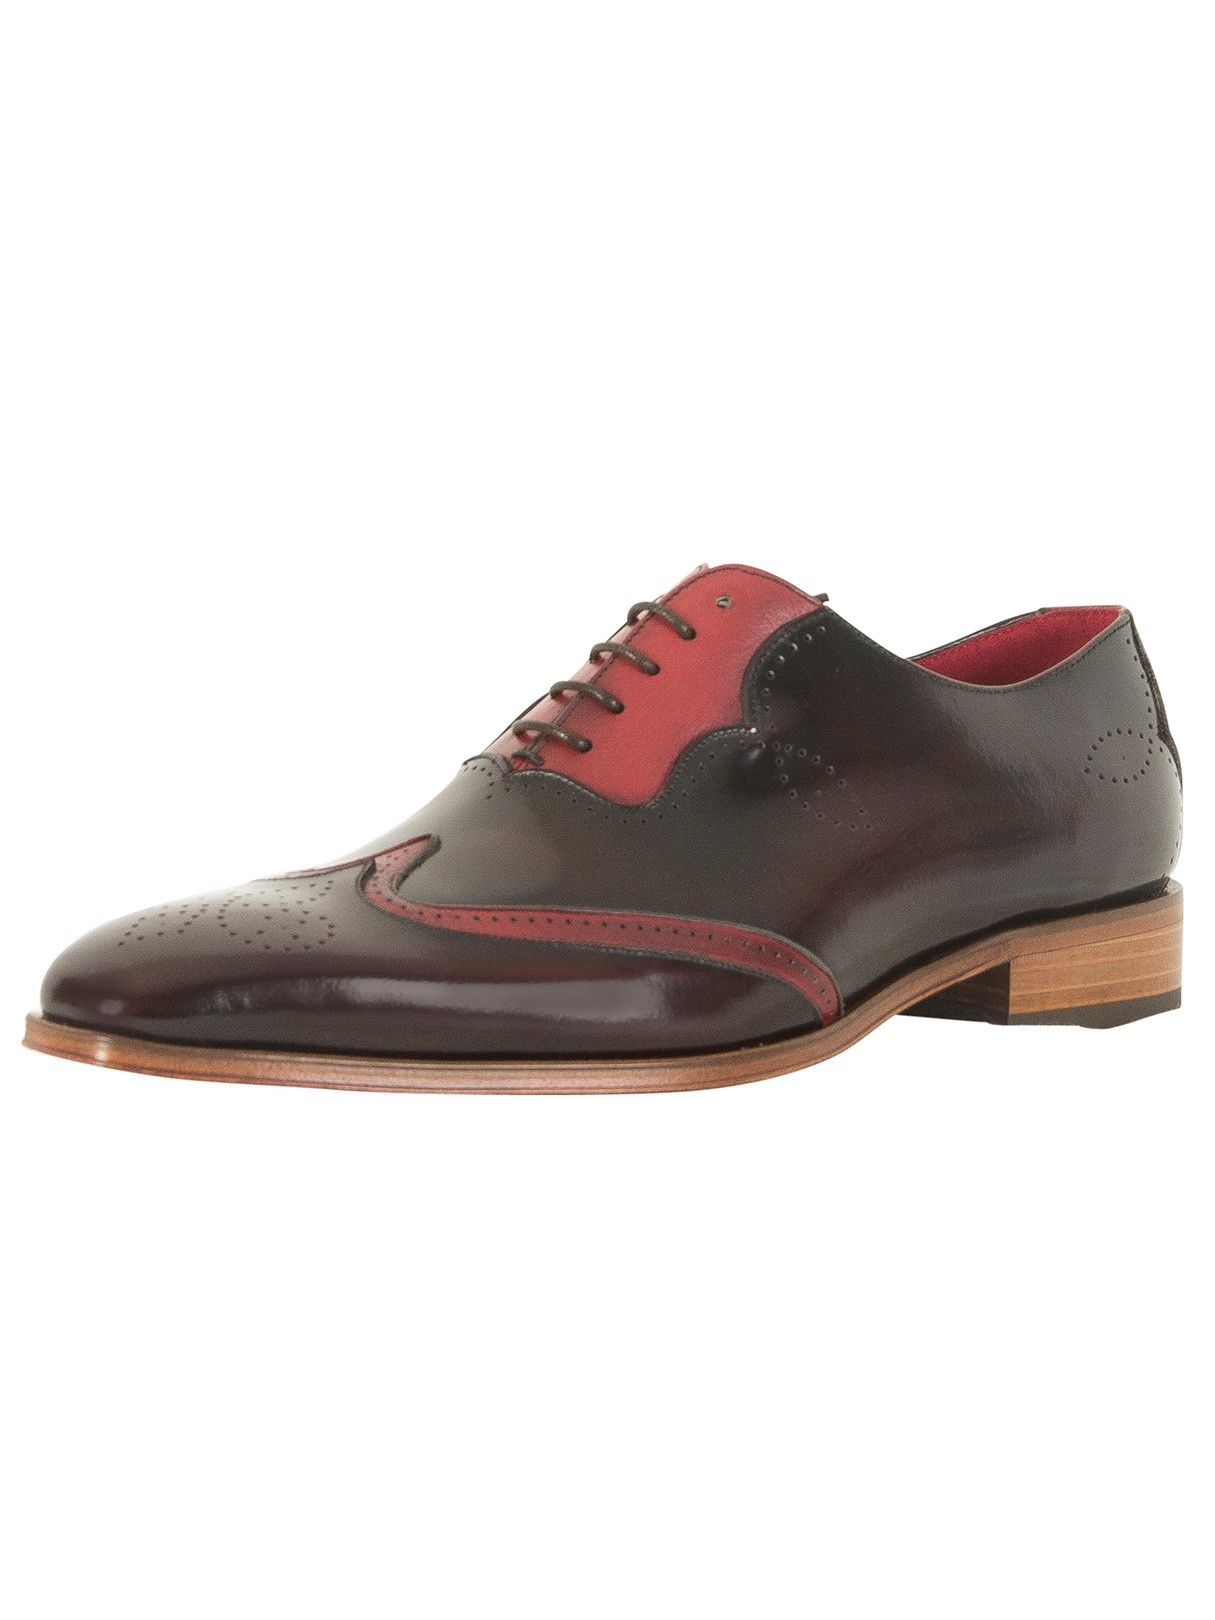 Stand-out.net Jeffery West College Burgundy/Tucuman Burgundy Capone Polished Leather Shoes